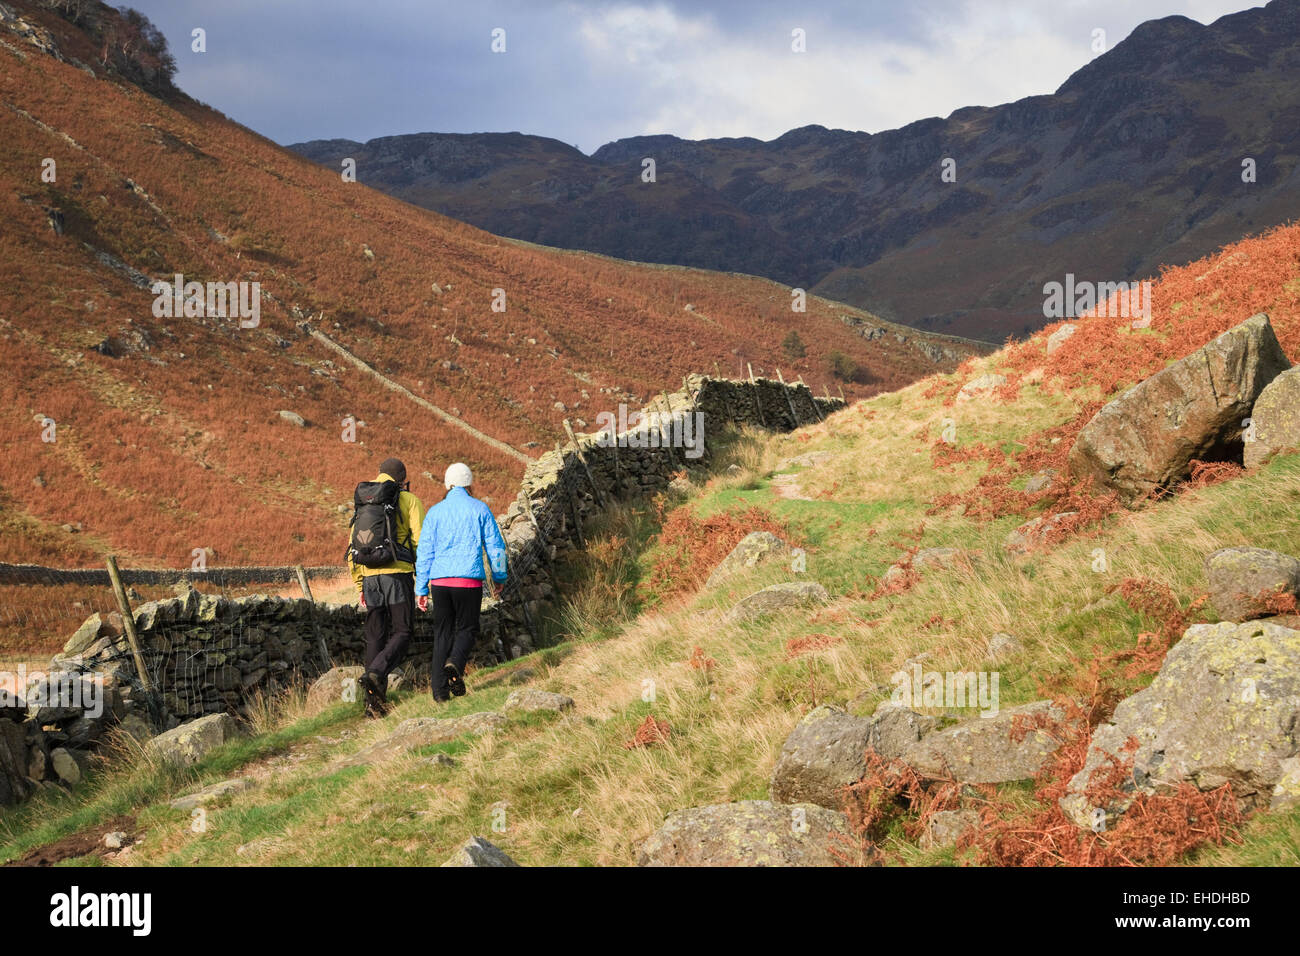 Two people walking on Cumbria Way path through Langstrath Valley in the Lake District, Borrowdale, Cumbria, England, - Stock Image